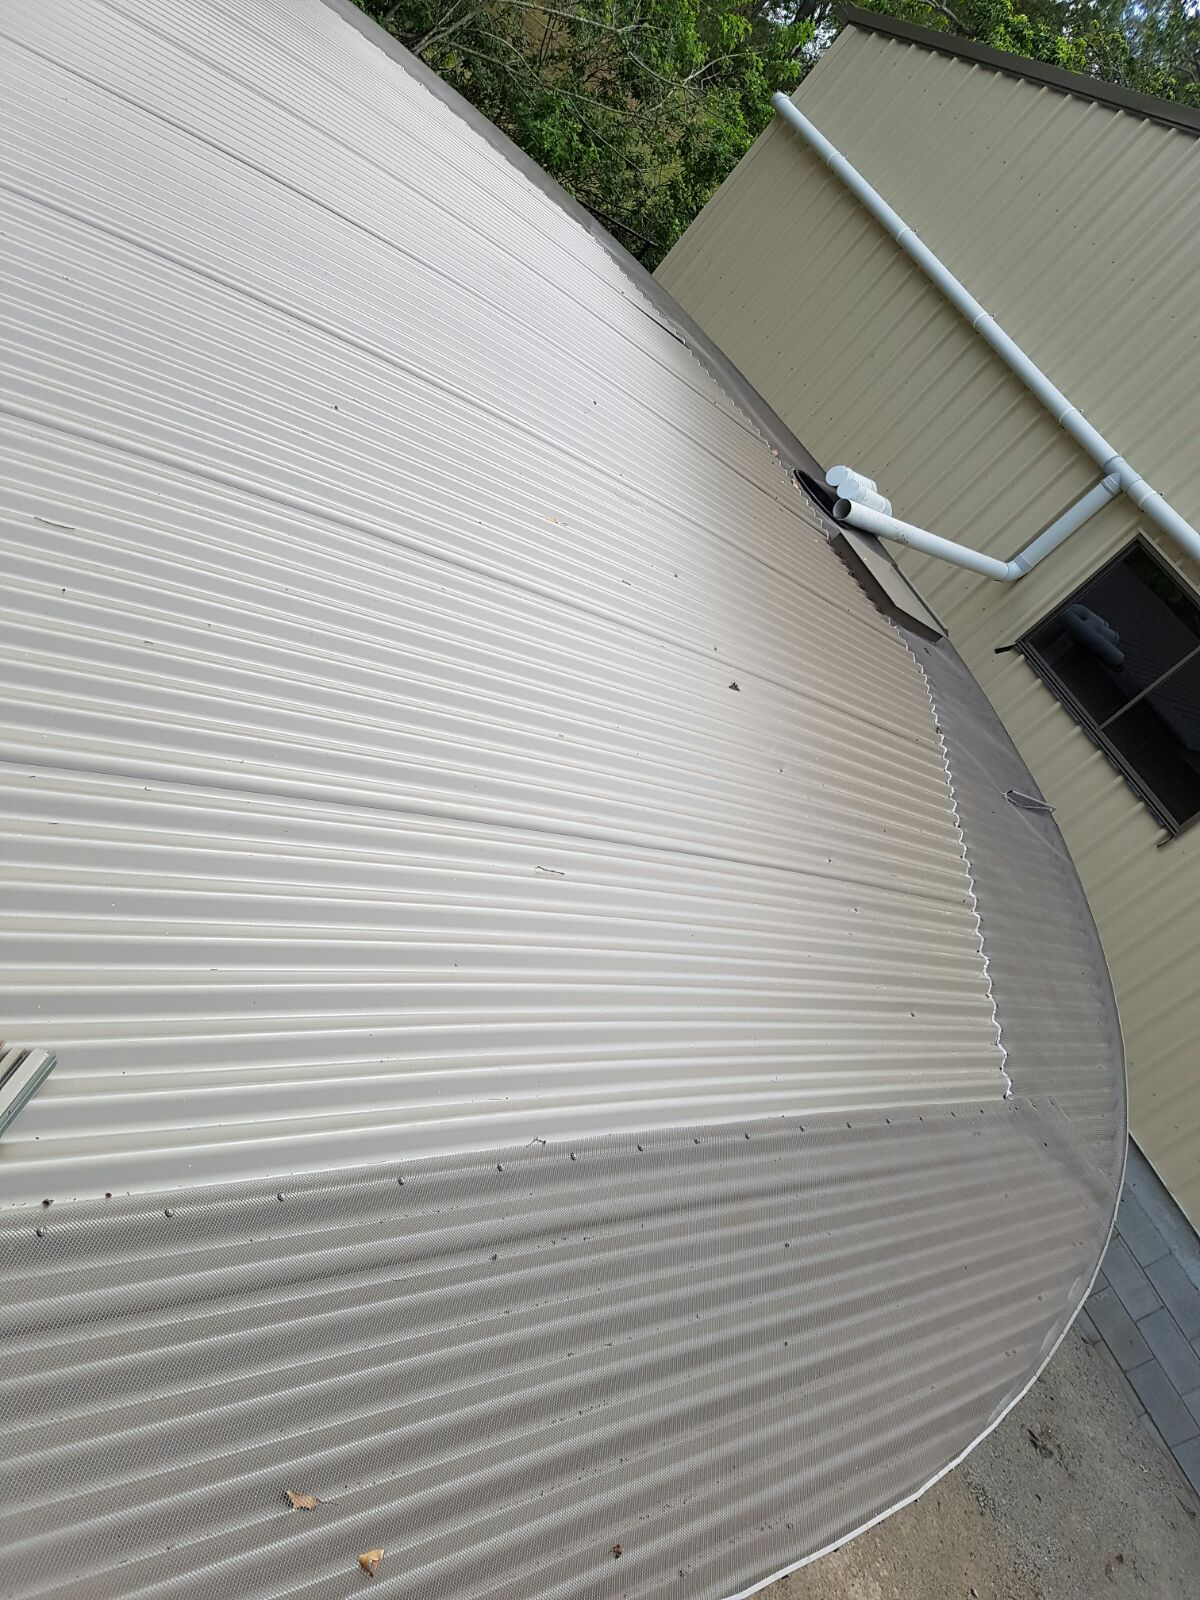 Gutter mesh installed on a commercial water tank